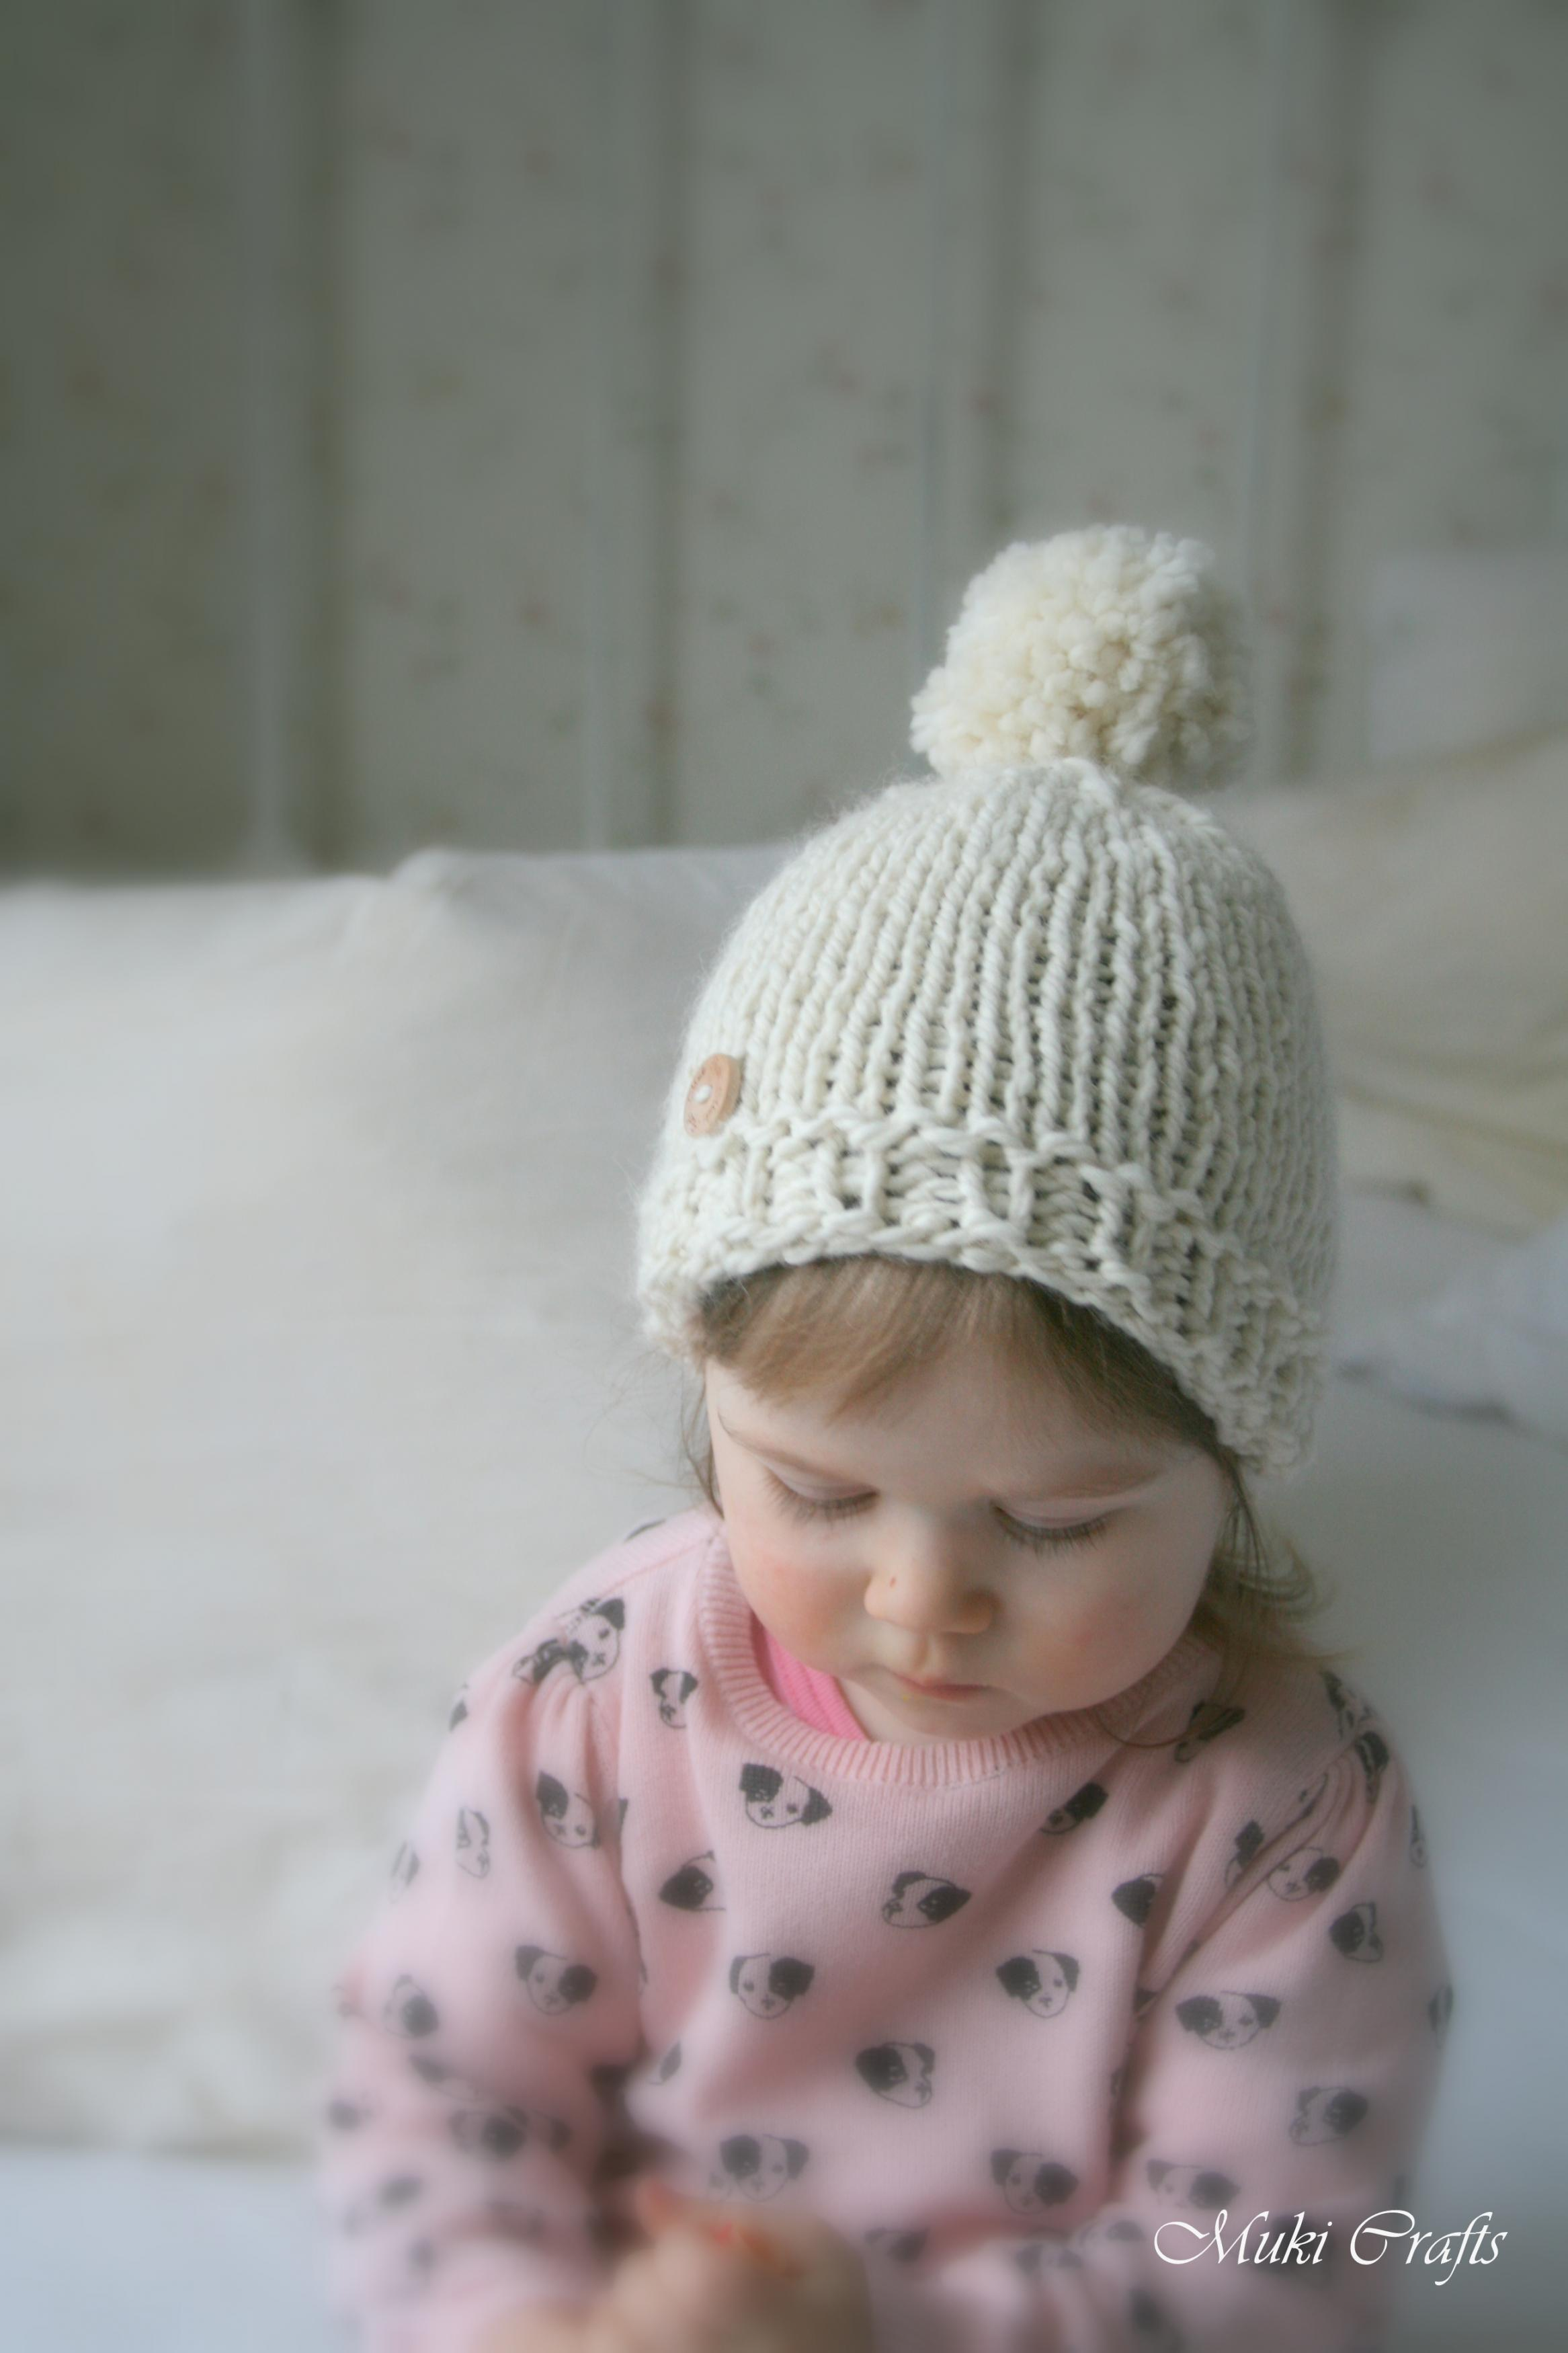 Toddler Beanie Knitting Pattern : KNITTING PATTERN Basic Beanie Pompom Hat Harper (baby, Toddler, Child, Woman ...